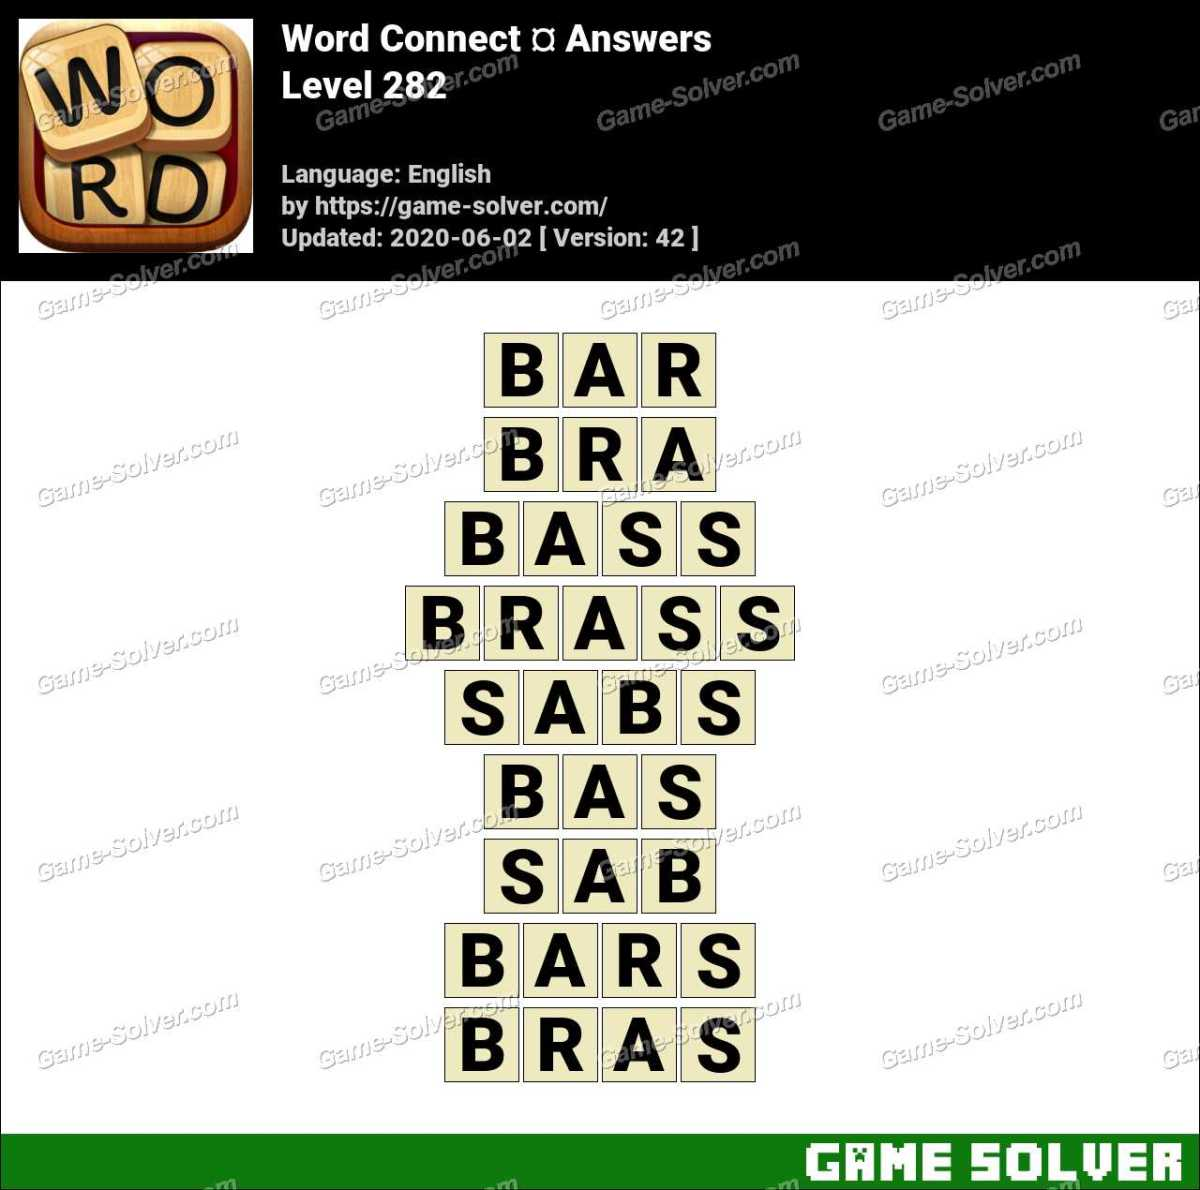 Word Connect Level 282 Answers